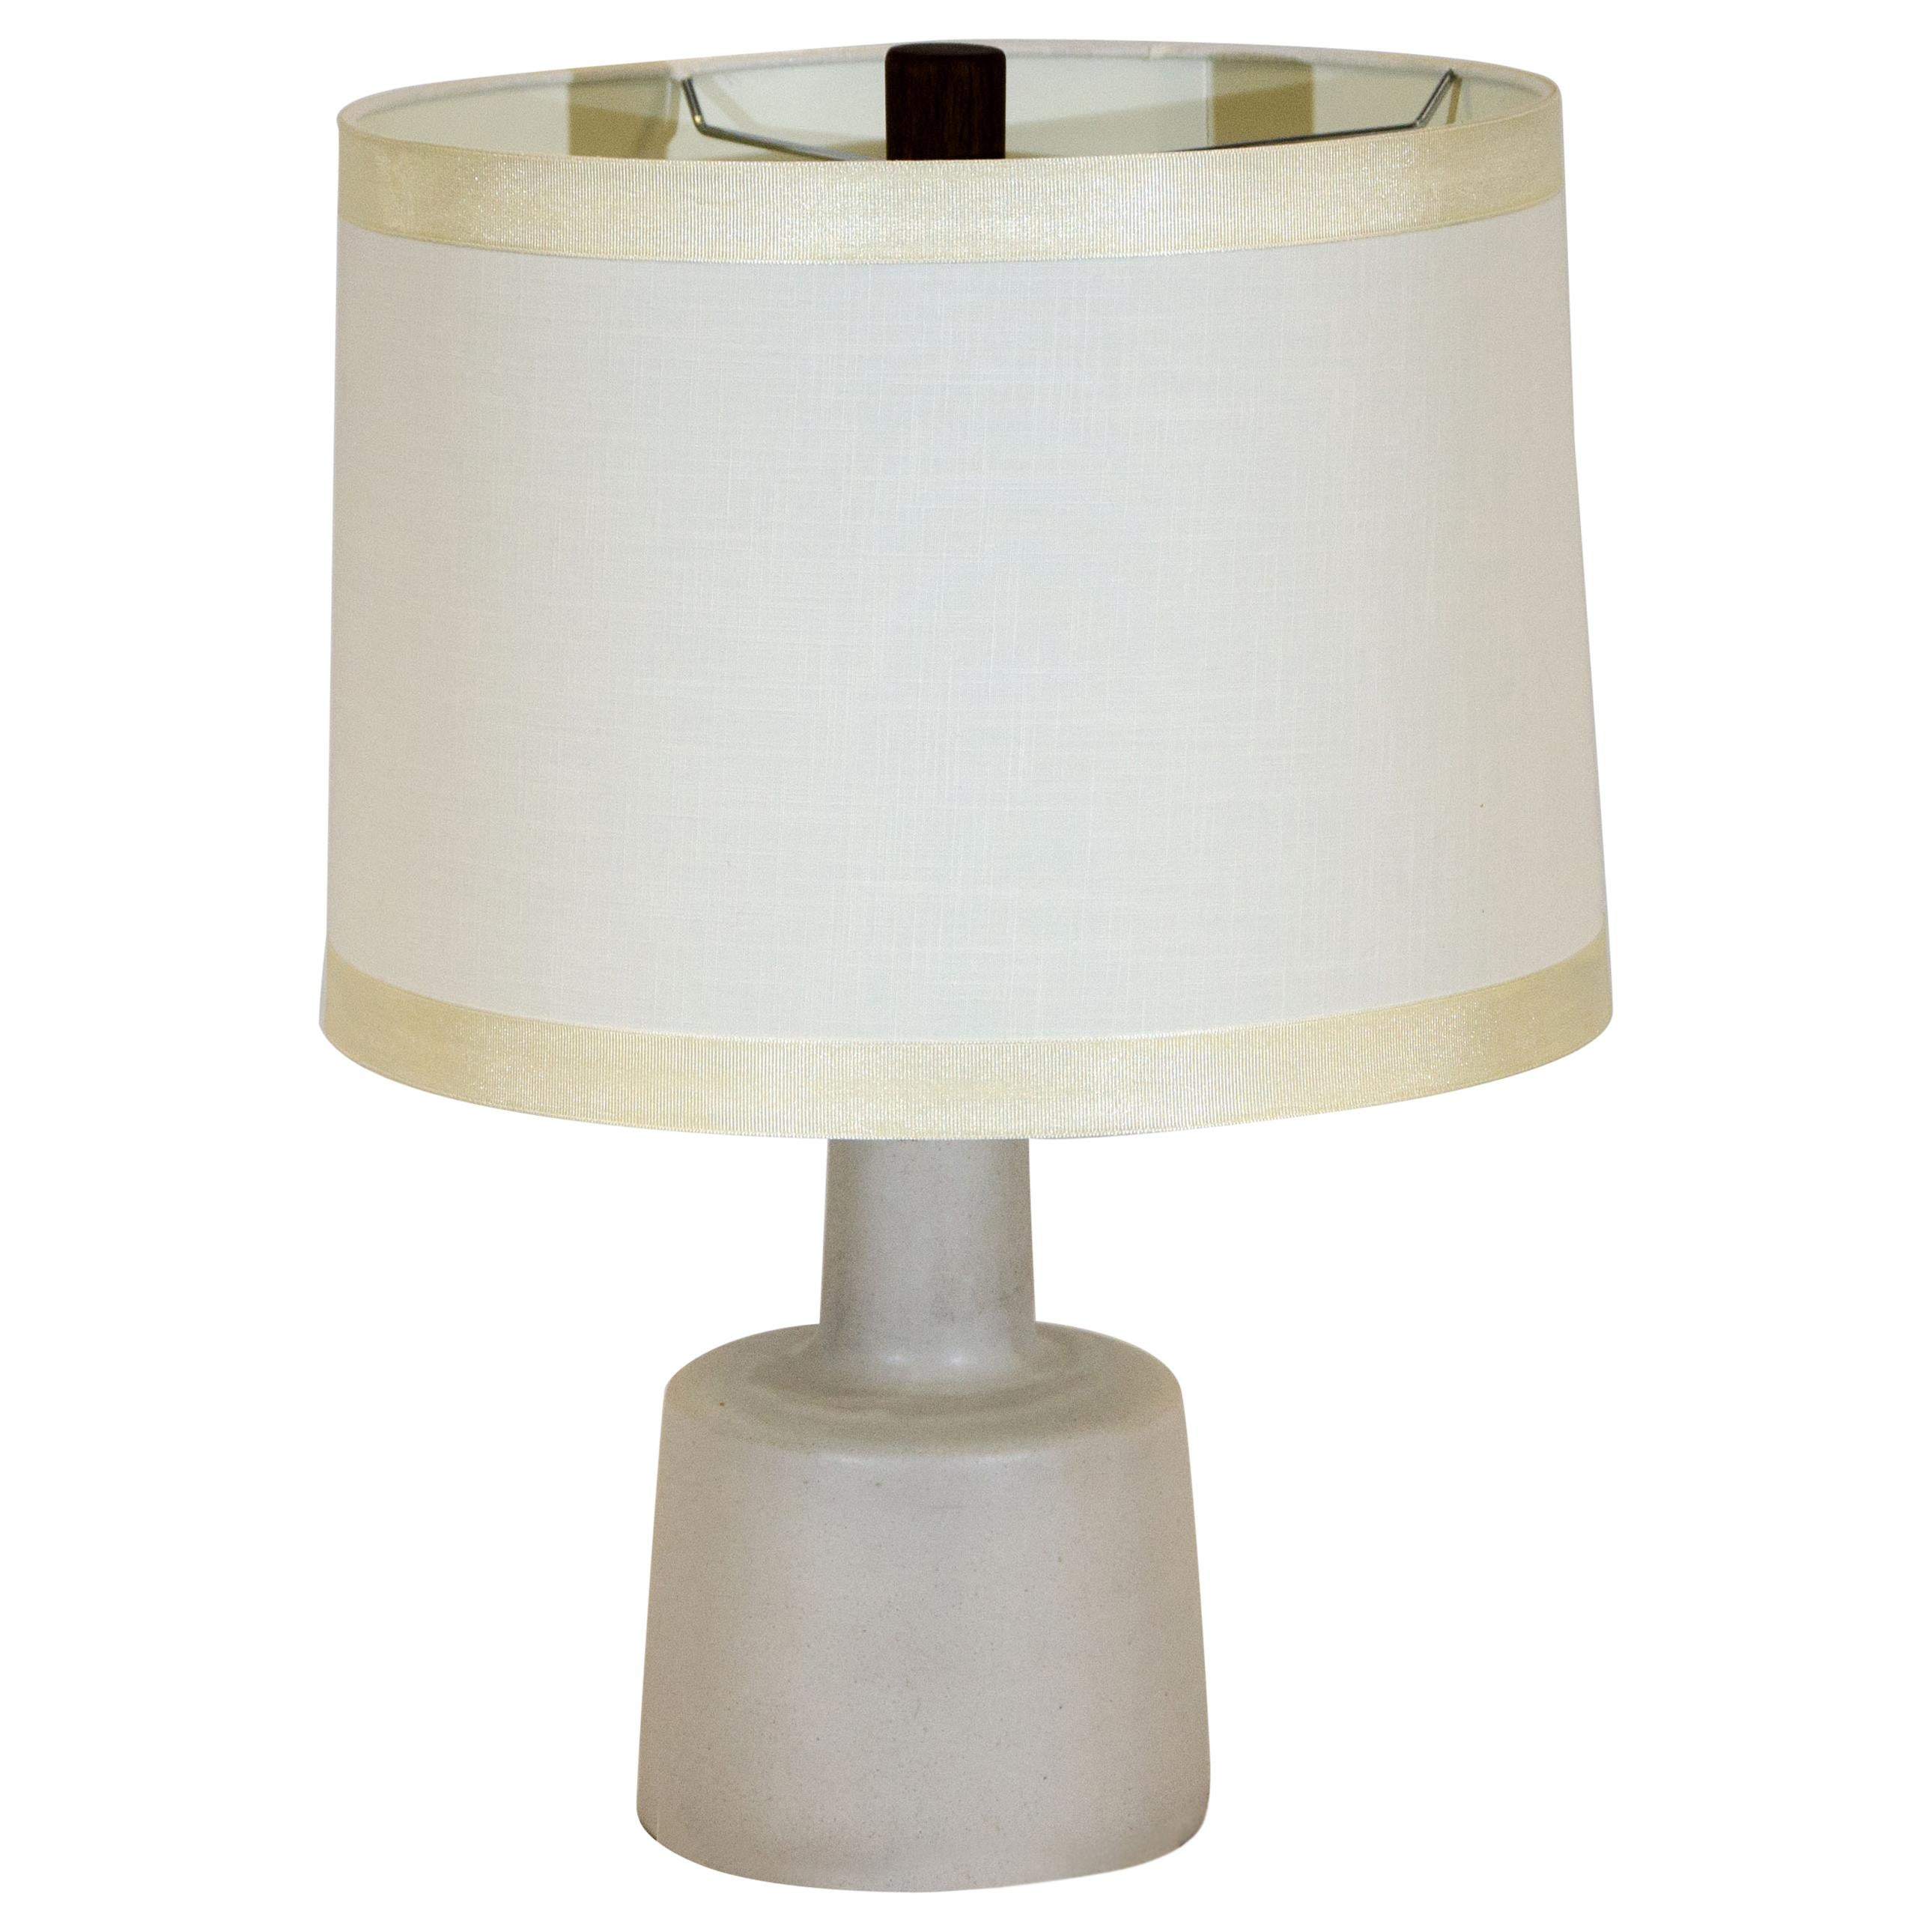 Ceramic Table Lamp by Gordon & Jane Martz for Marshall Studios